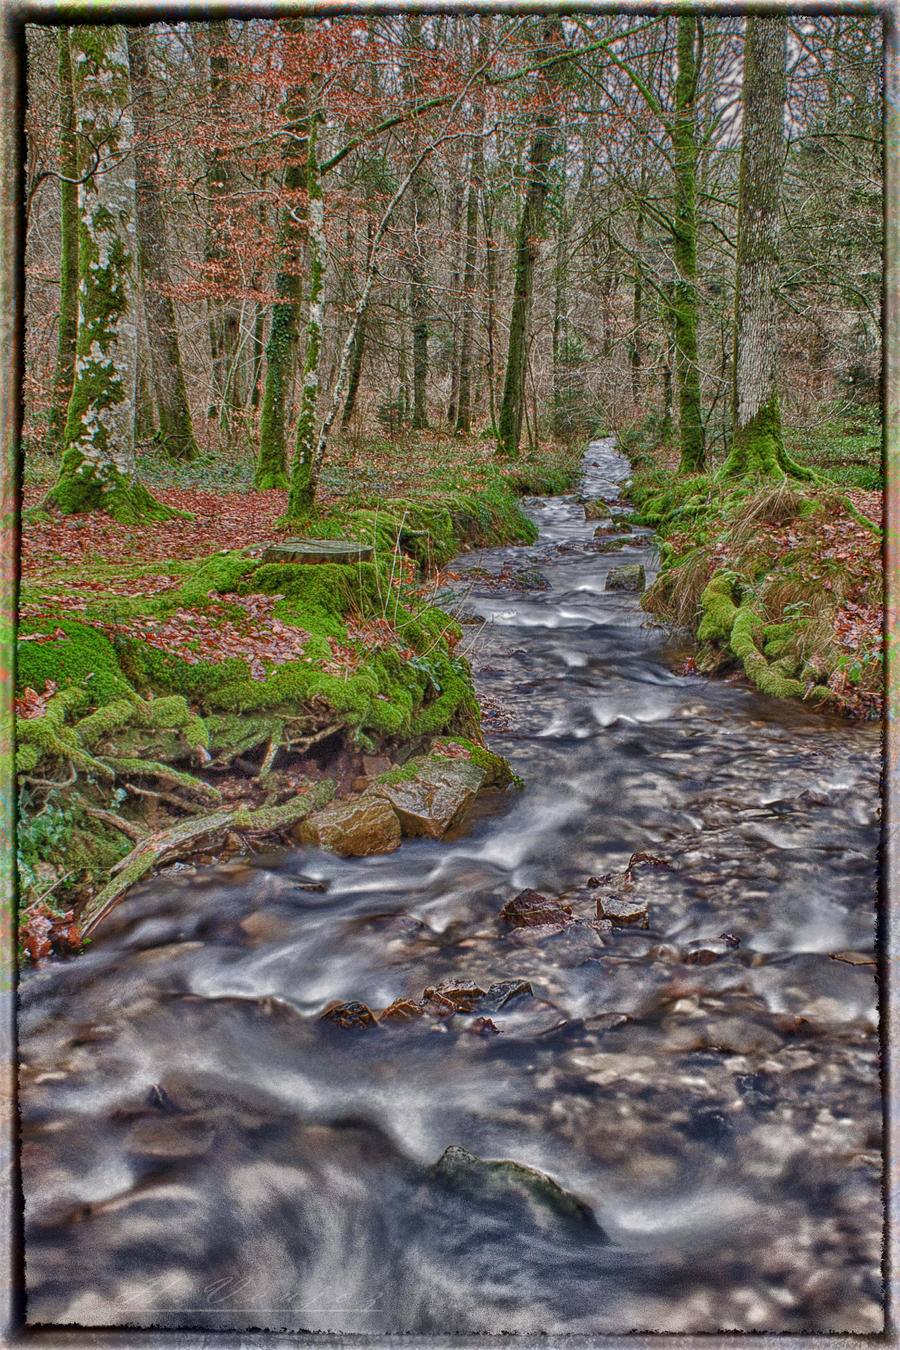 Forest of Ecouve Orne France by hubert61